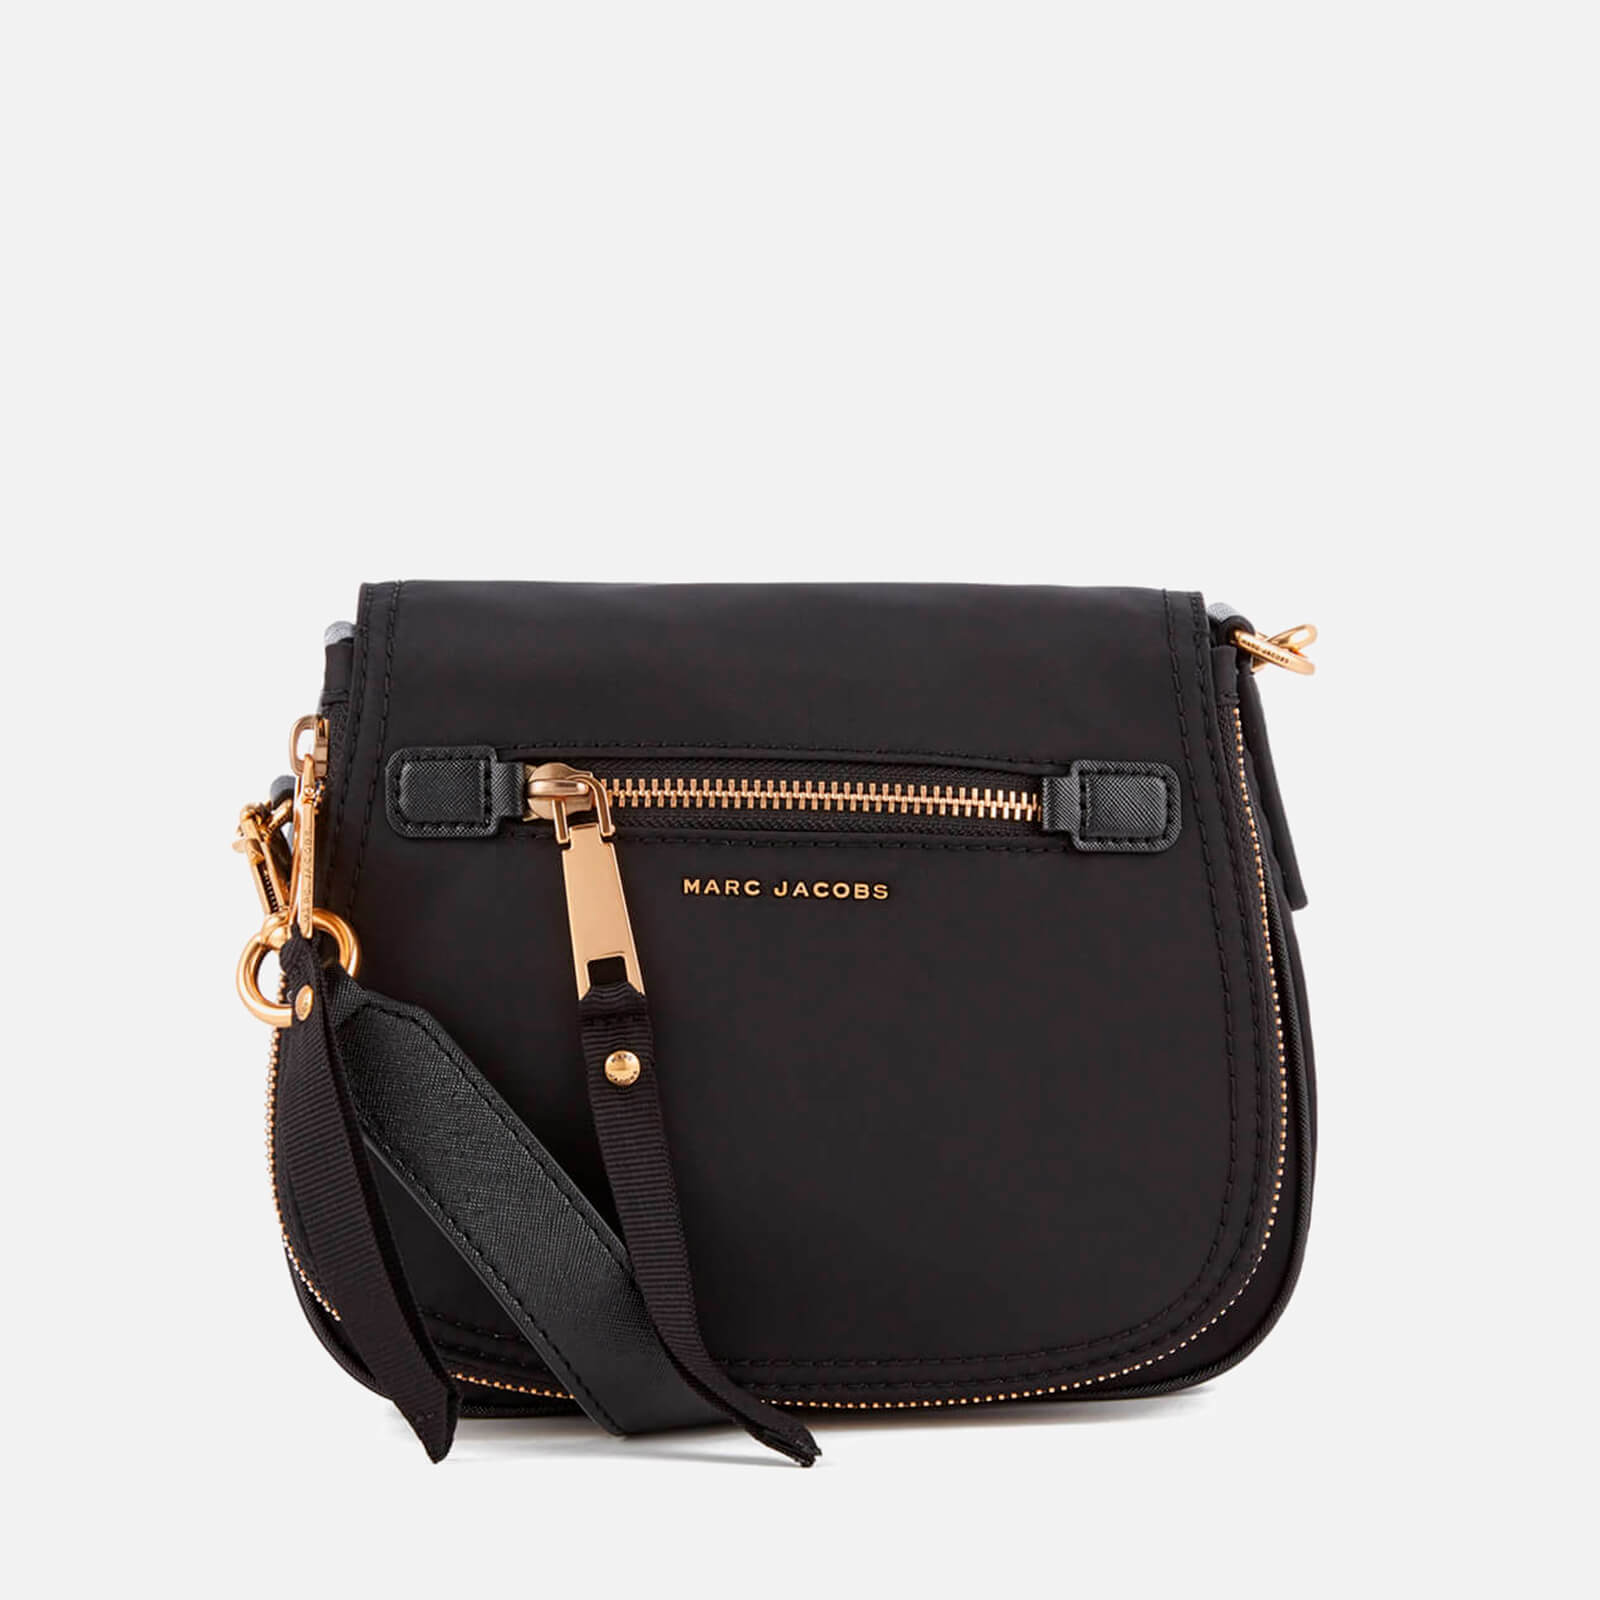 070d8dba656a Marc Jacobs Women s Trooper Small Nomad Bag - Black - Free UK Delivery over  £50